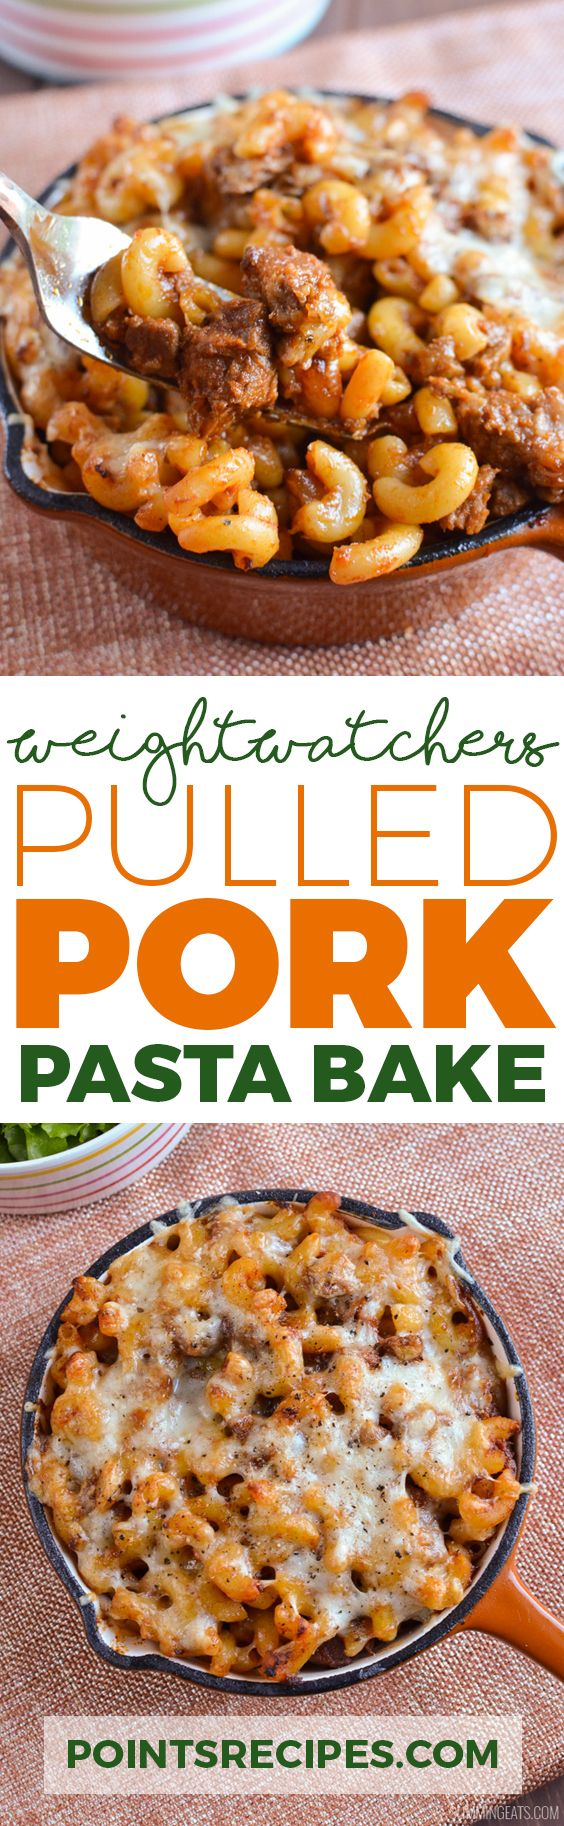 The Top 5 High End SmartWatches Compared PULLED PORK PASTA BAKE (Weight Watchers SmartPoints)